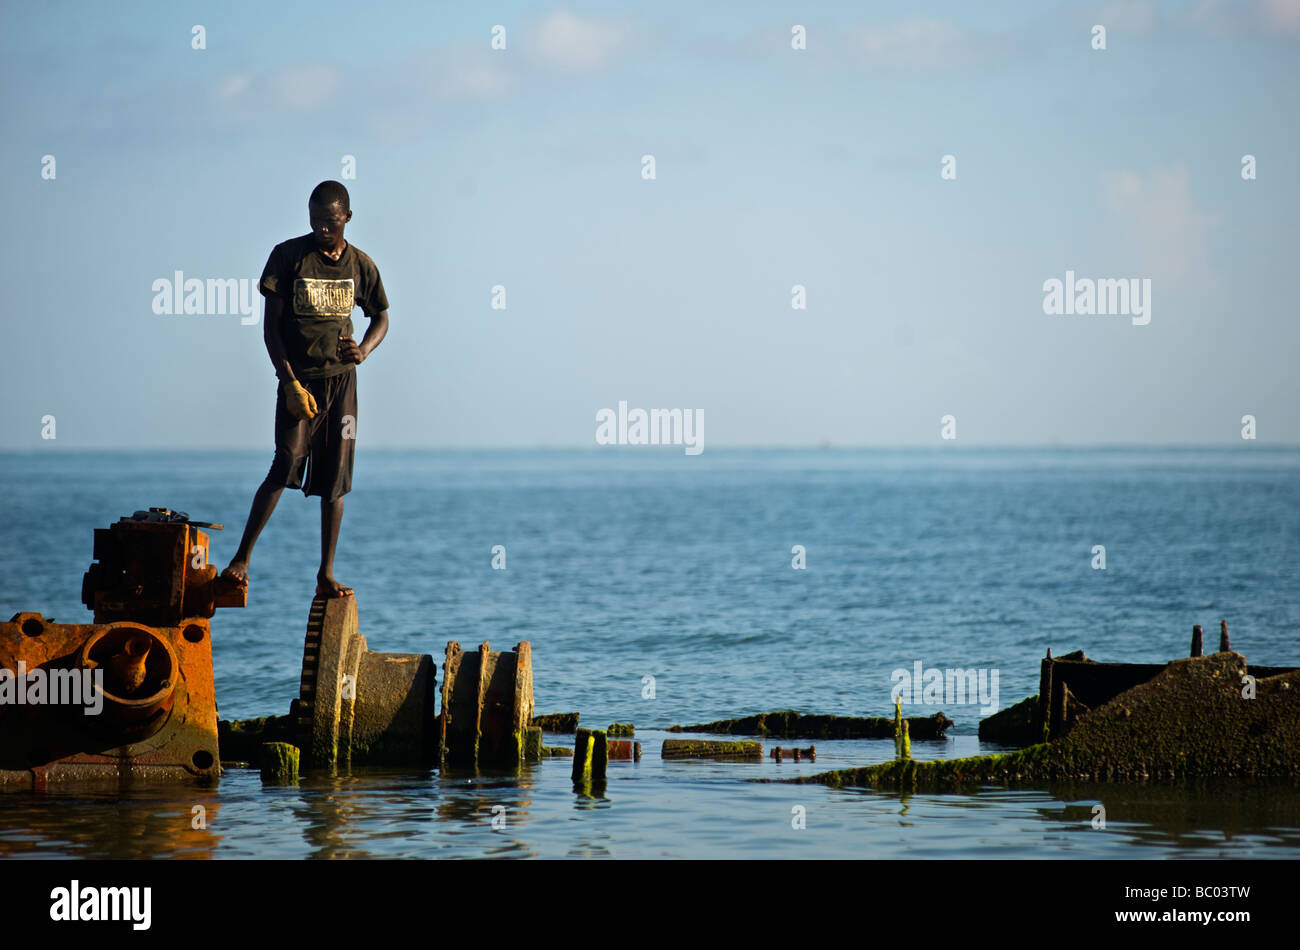 A young man stands atop beached wreckage of a former vessel at Bord de Mer de Limonade, Haiti. - Stock Image